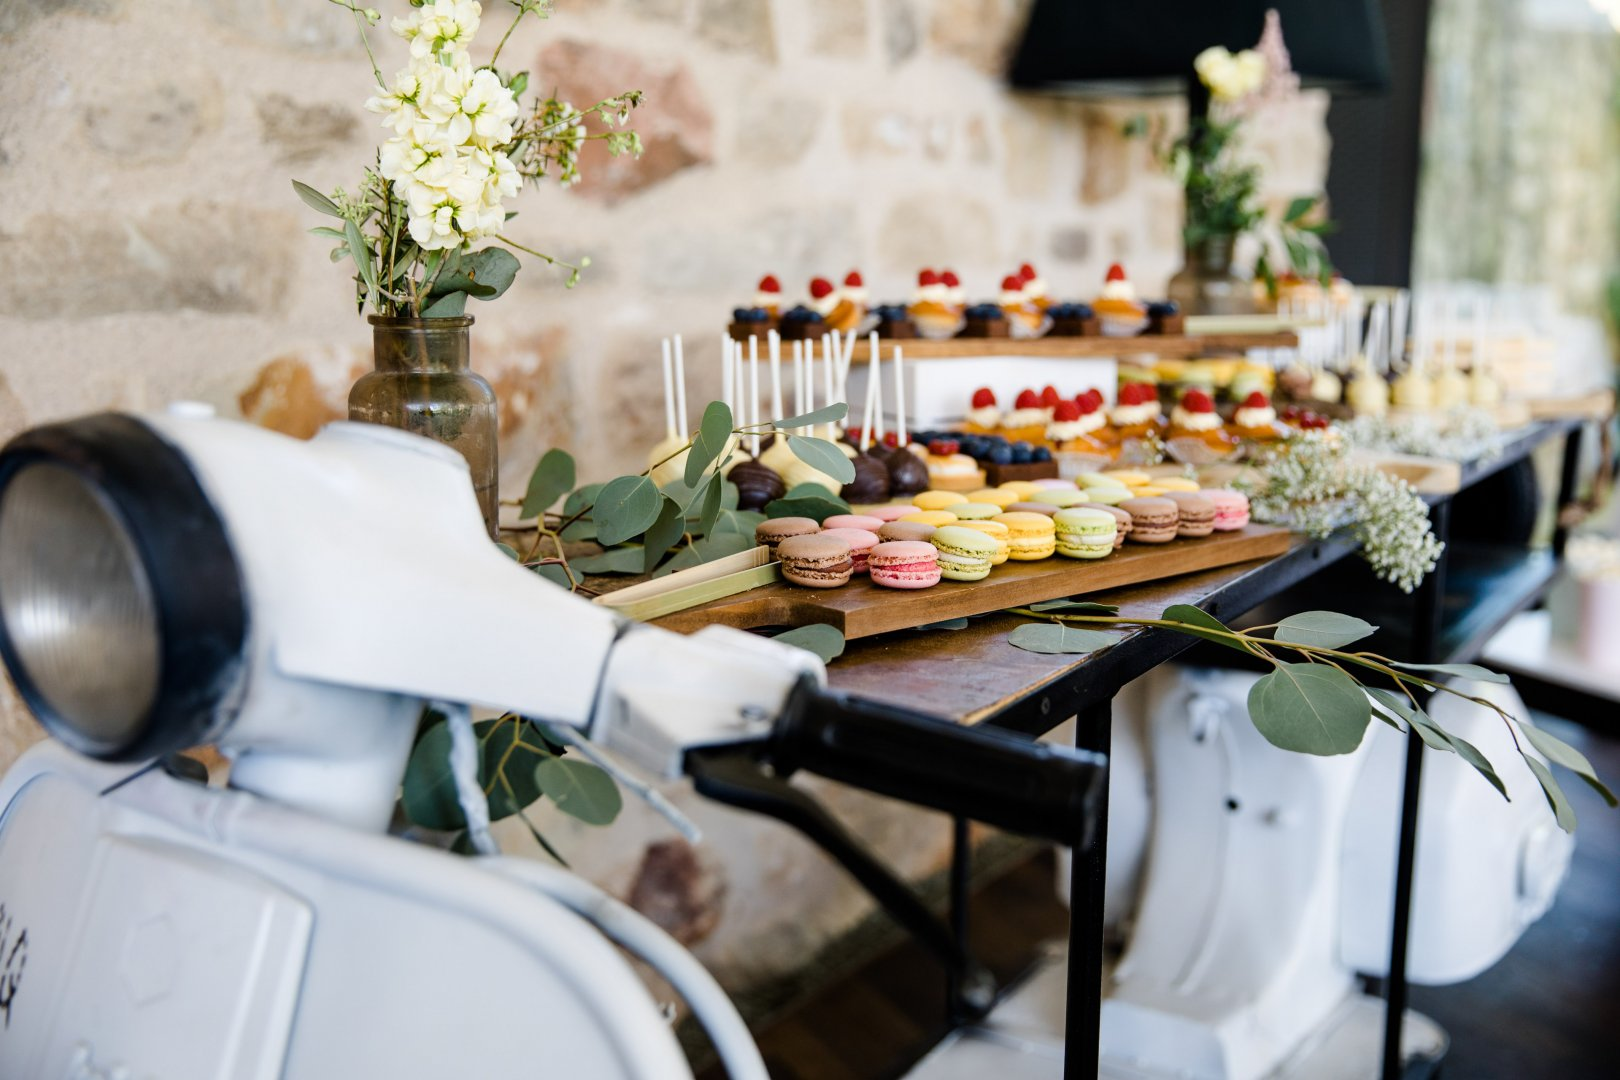 Photograph Brunch Table Yellow Furniture Room Flower Meal Rehearsal dinner Tableware Chair Floristry Textile Tablecloth Interior design Plant Centrepiece Restaurant Wedding reception Party Floral design Linens Flower Arranging Breakfast Banquet Ceremony